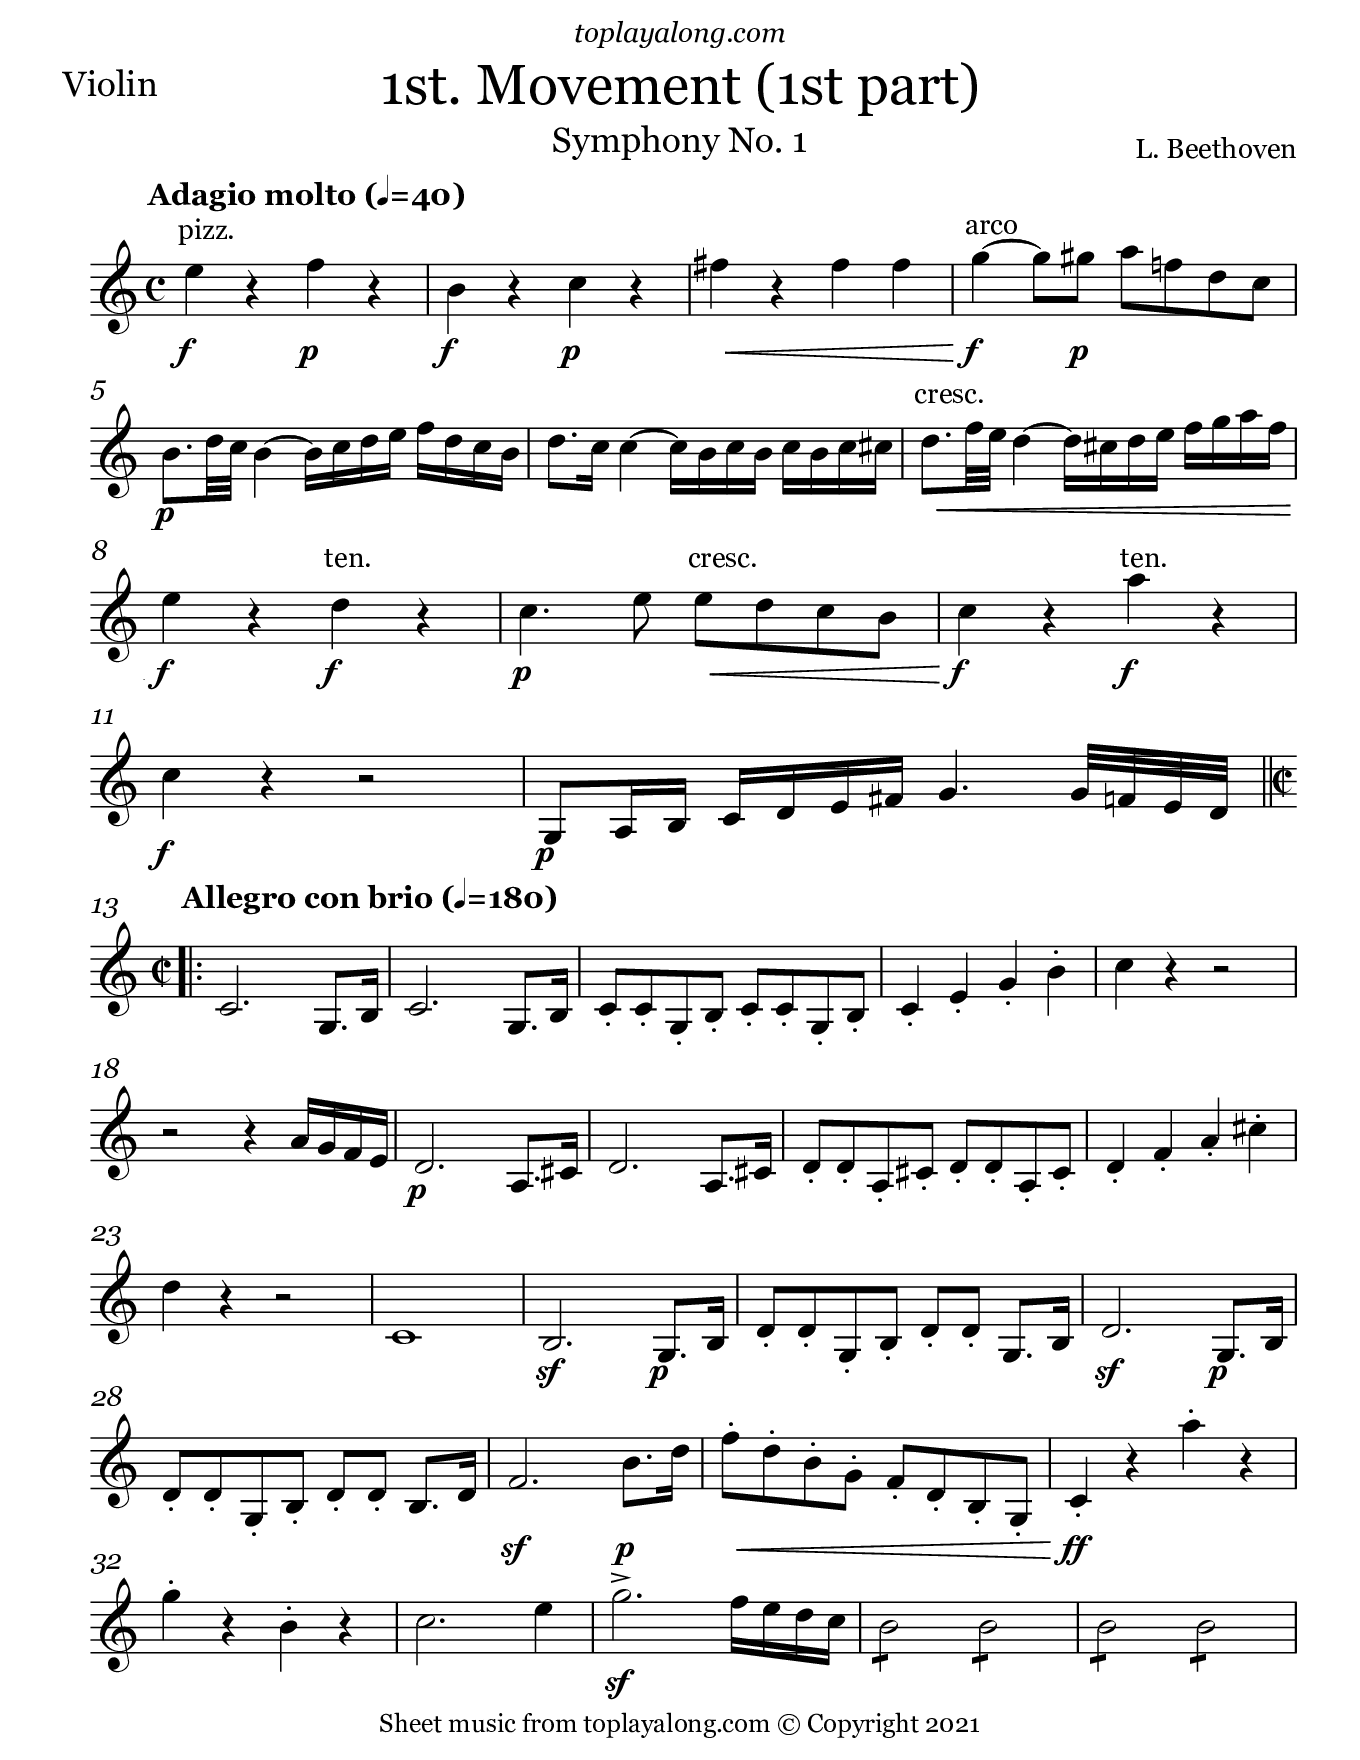 Symphony No.1 (1st. Movement - Part 1) by Beethoven. Sheet music for Violin, page 1.